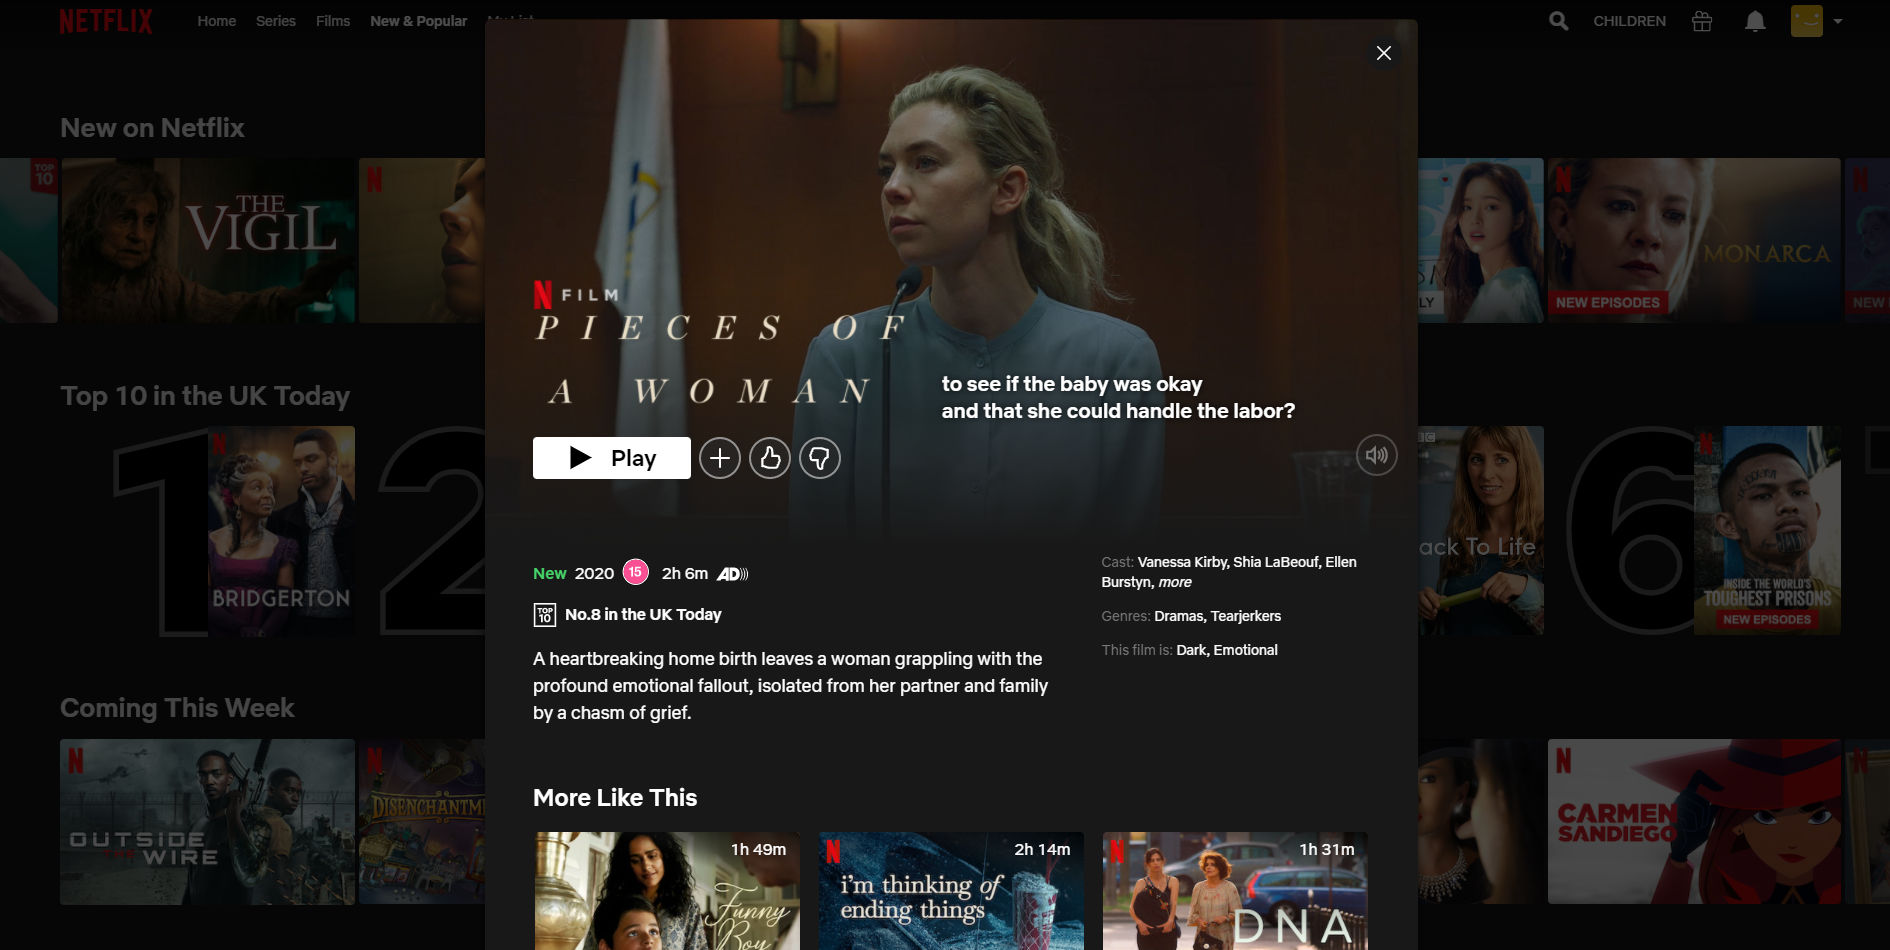 Pieces-of-a-woman-on-Netflix